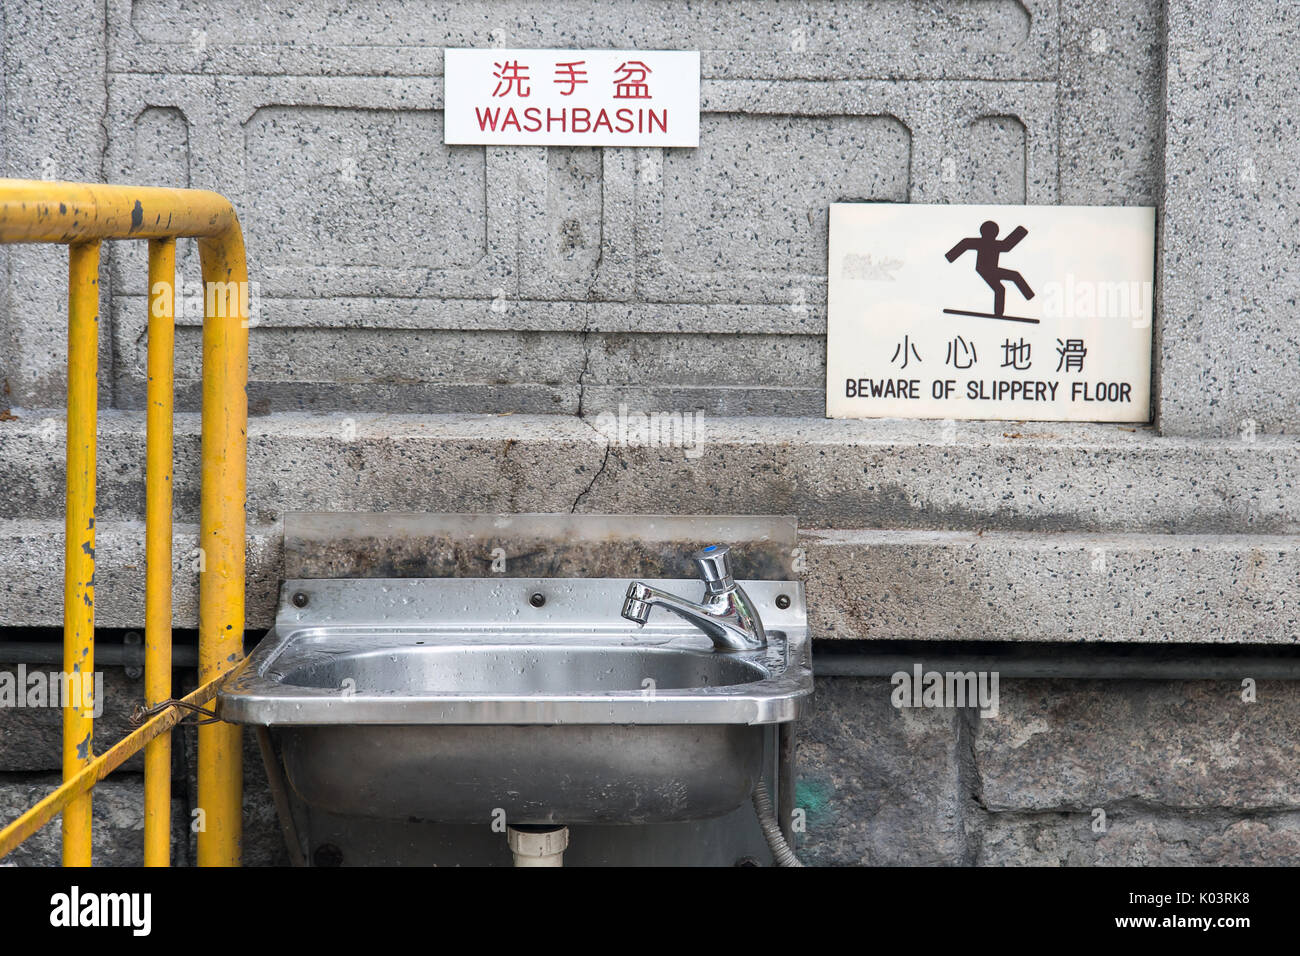 Steel sink hang on stone wall on street in city center. The empty public bathroom in Hong Kong. - Stock Image